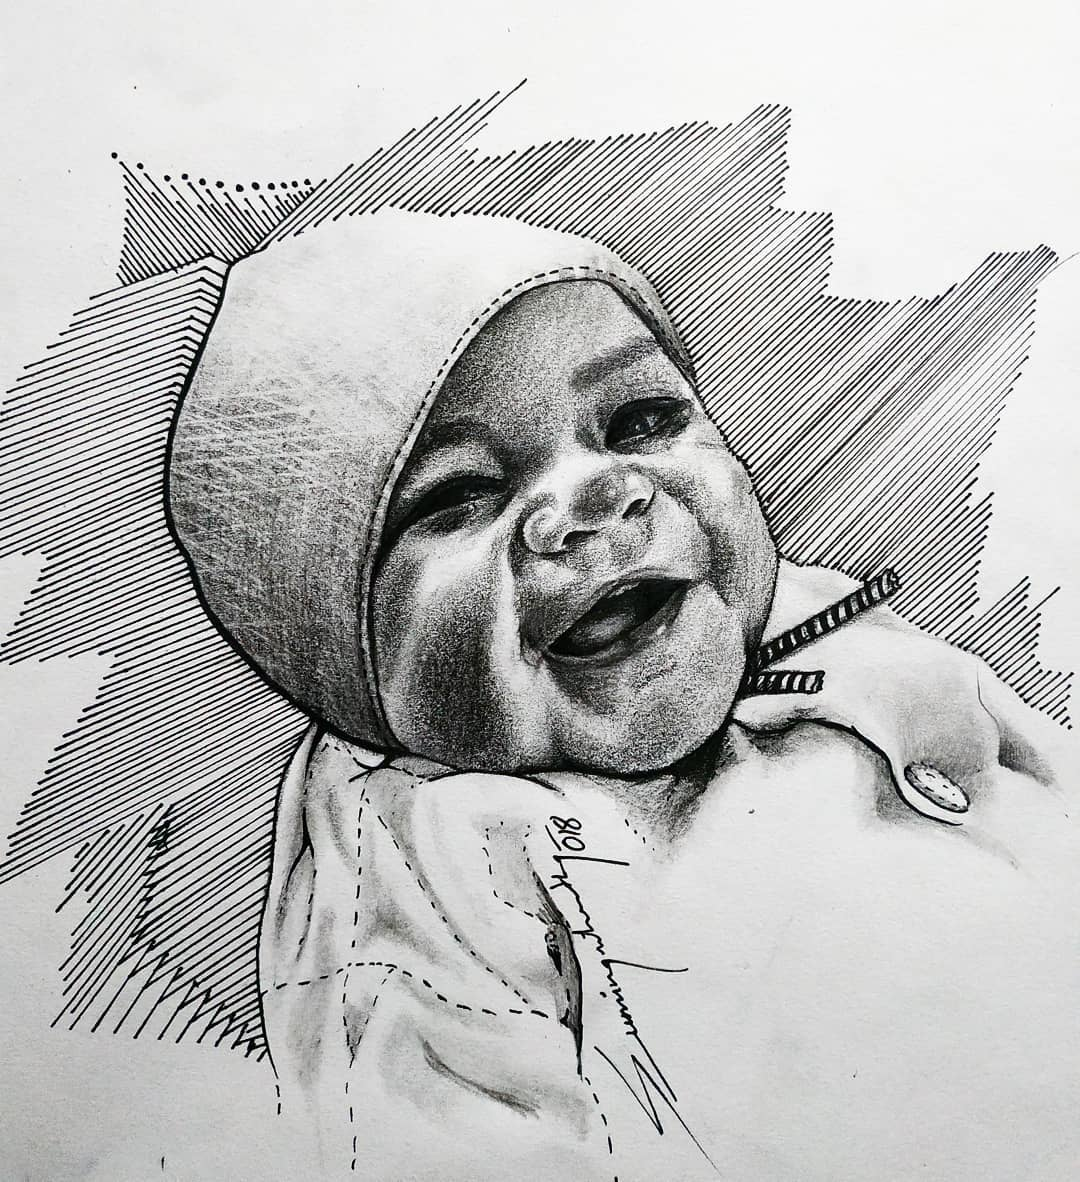 Child portrait by Sumina Shrestha, Tattoo Artist in Nepal